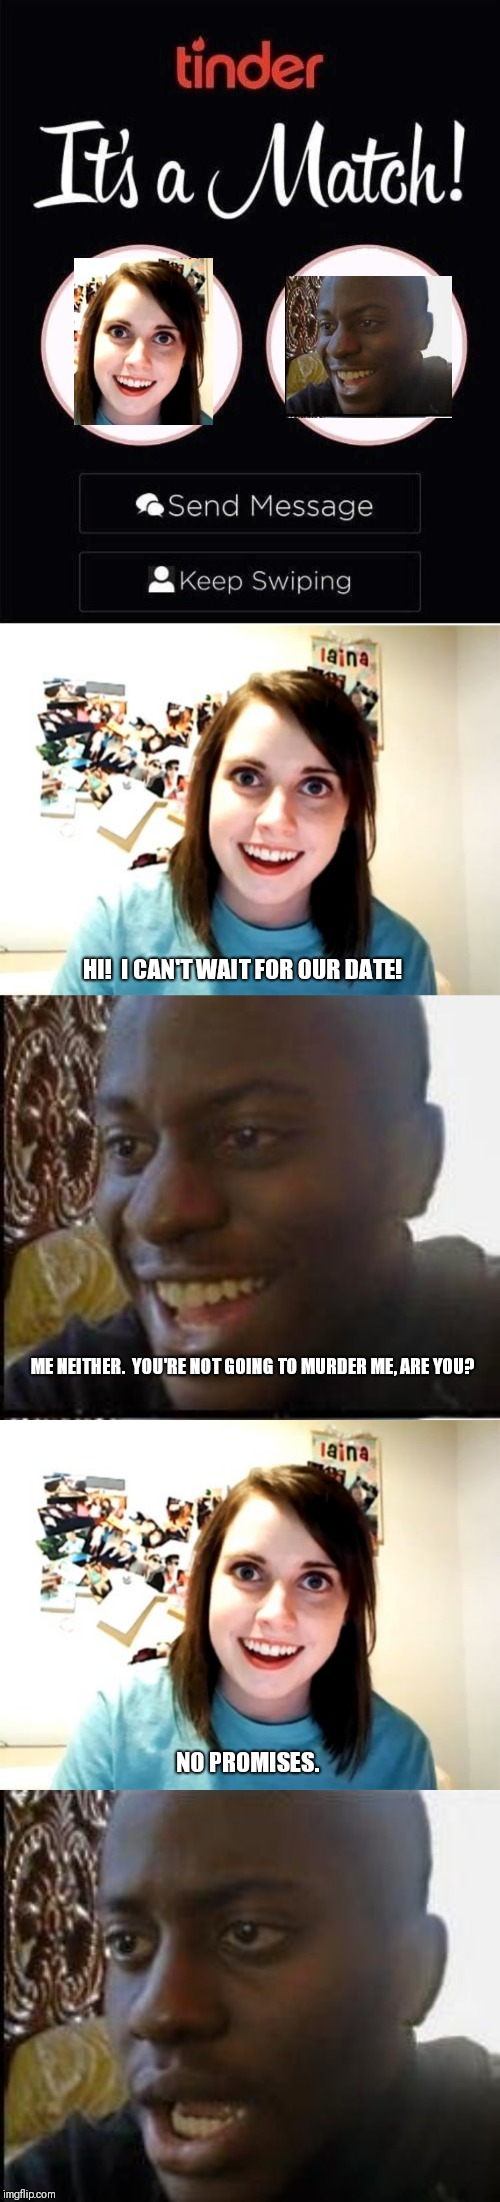 Dating in the cyber age. | ME NEITHER.  YOU'RE NOT GOING TO MURDER ME, ARE YOU? HI!  I CAN'T WAIT FOR OUR DATE! NO PROMISES. | image tagged in memes,overly attached girlfriend,disappointed black guy,tinder | made w/ Imgflip meme maker